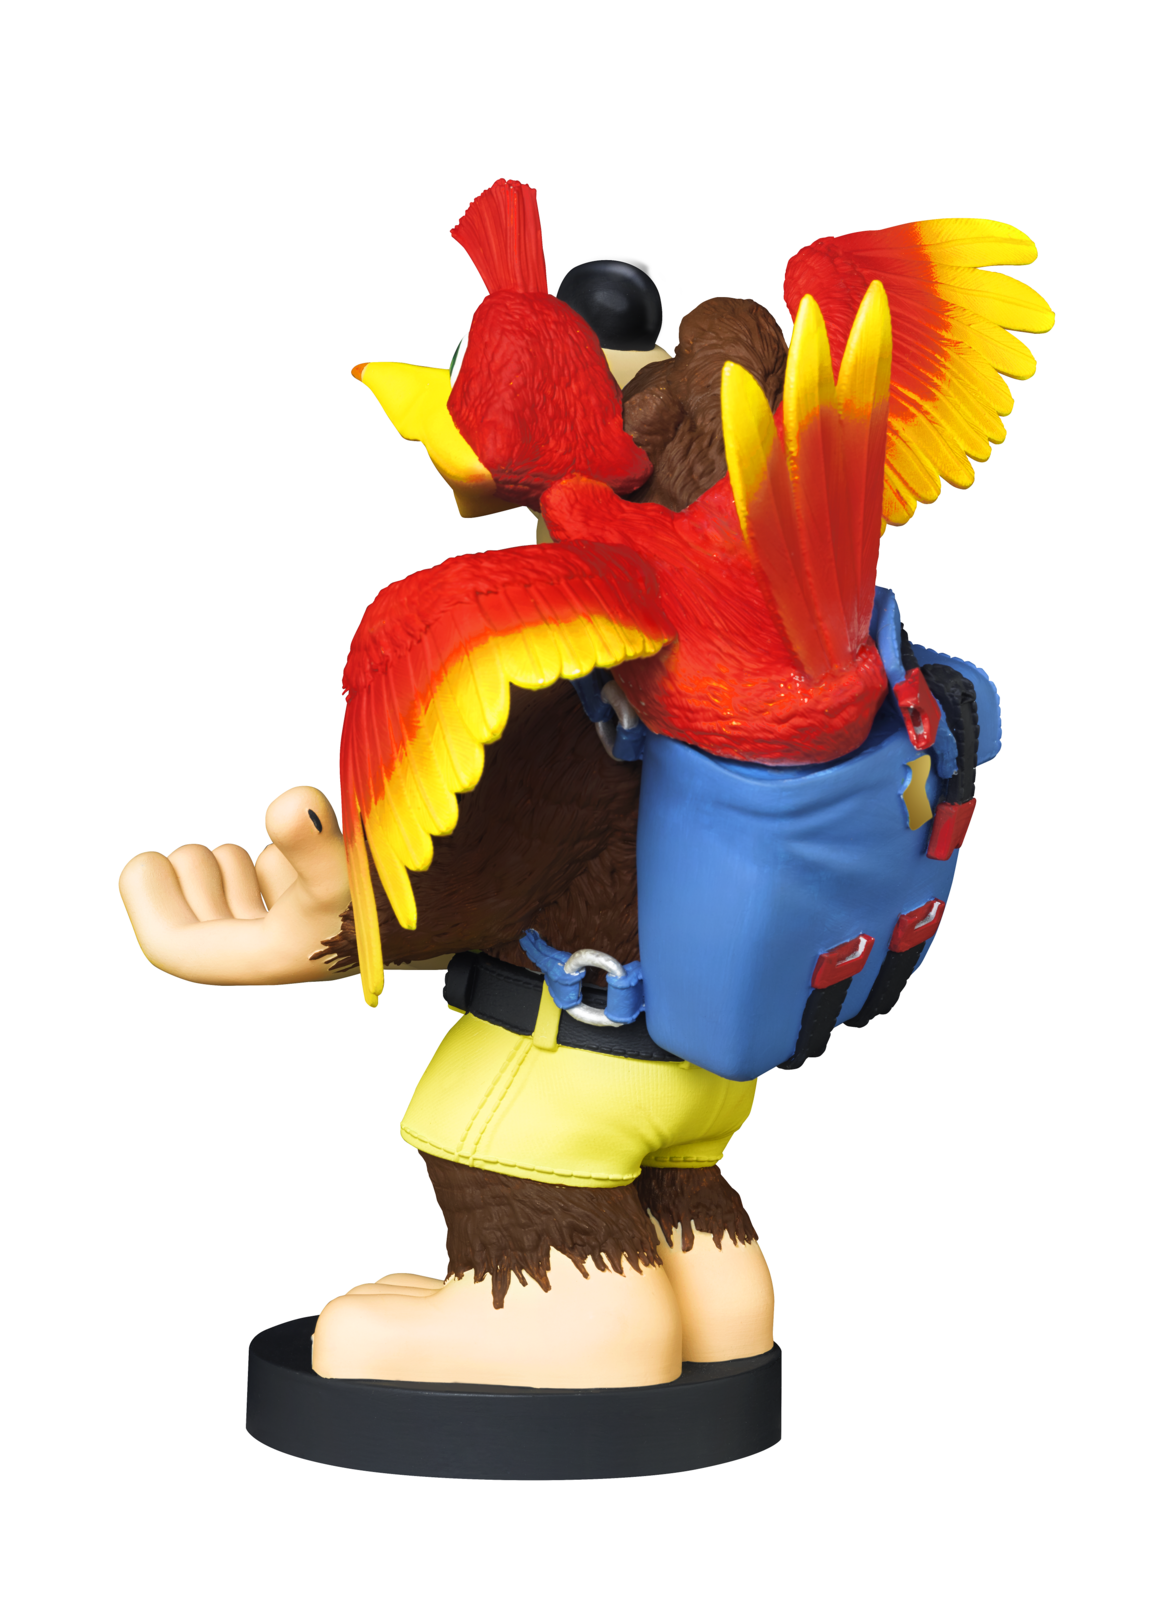 Cable Guy Controller Holder - Banjo Kazooie - PS4